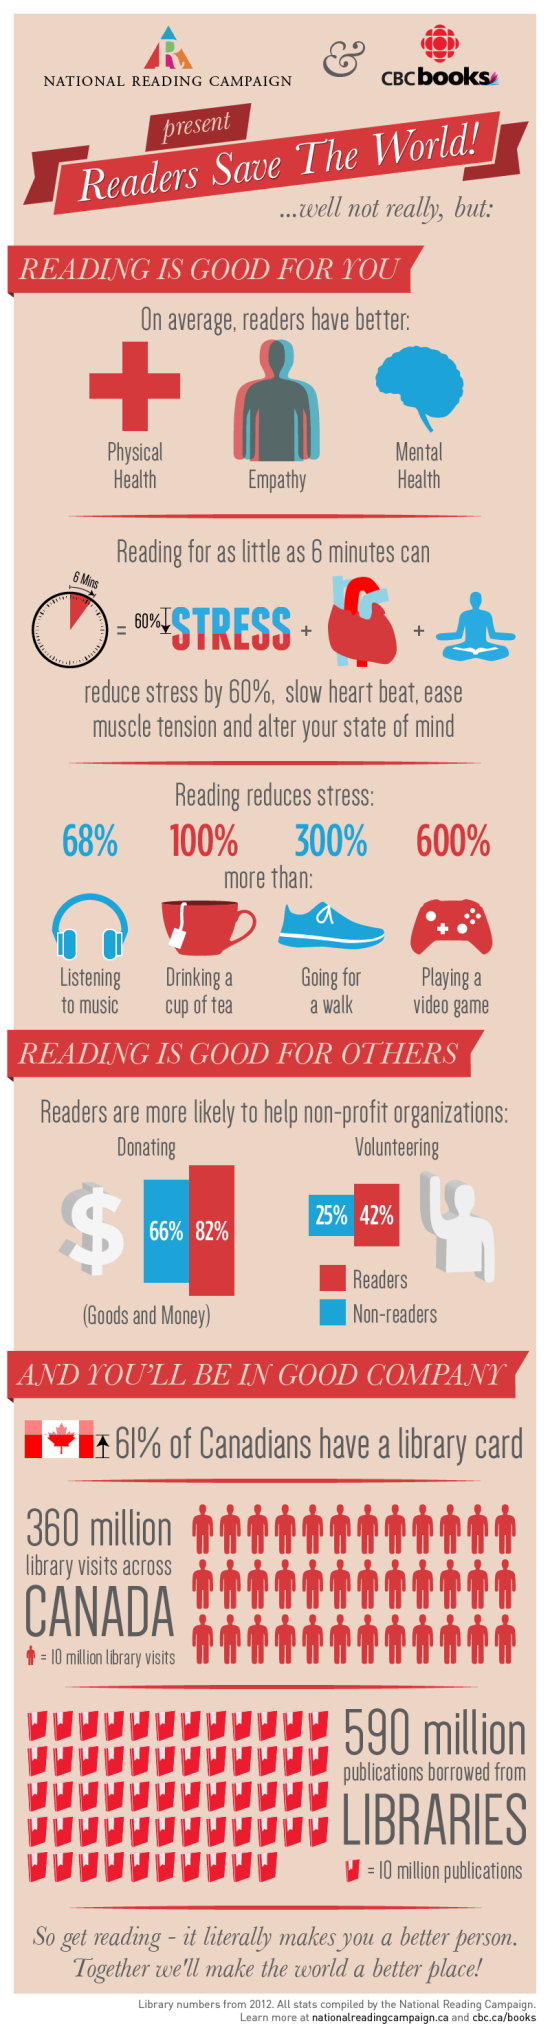 Infographic: Reading Can be Good for Your Health Infographic